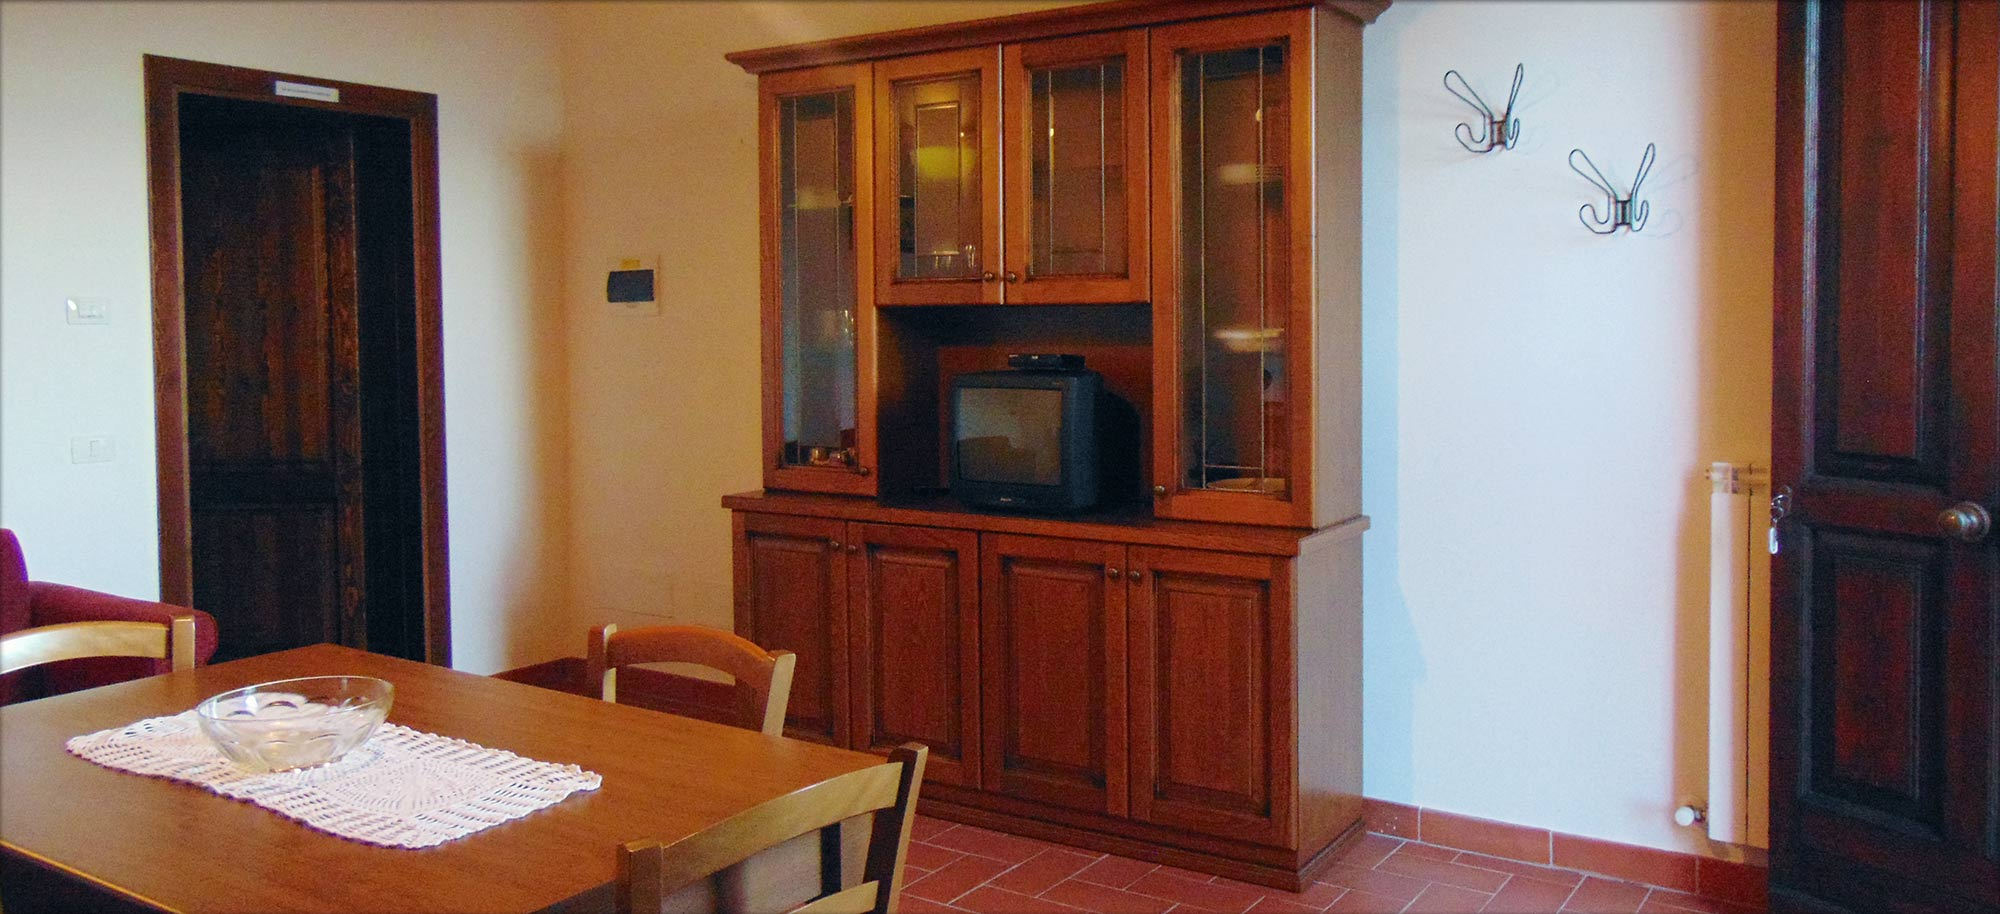 Corte Tommasi - Holiday apartments in Tuscany - 207 - Tuscany apartment with swimming pool